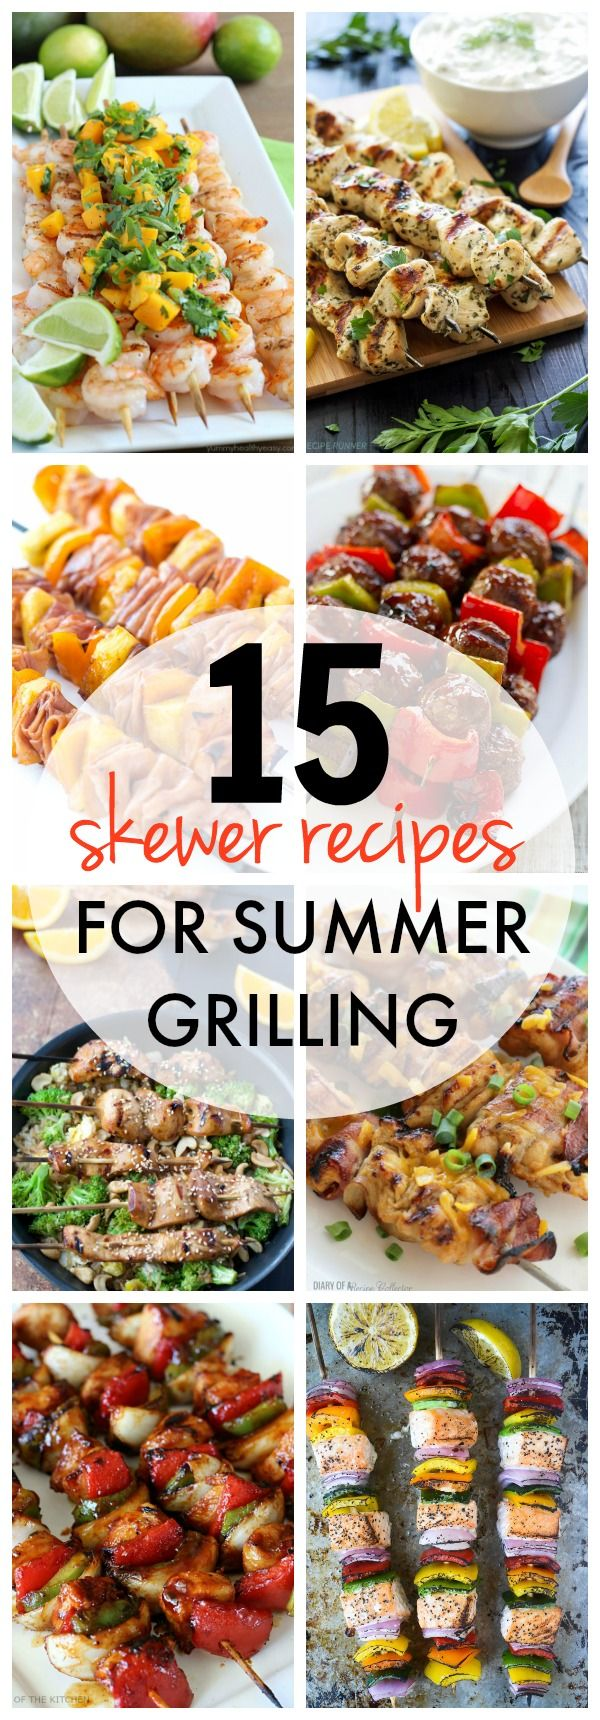 15 Skewer Recipes For Summer Grilling Yummy Healthy Easy Skewer Recipes Bbq Recipes Summer Grilling Recipes